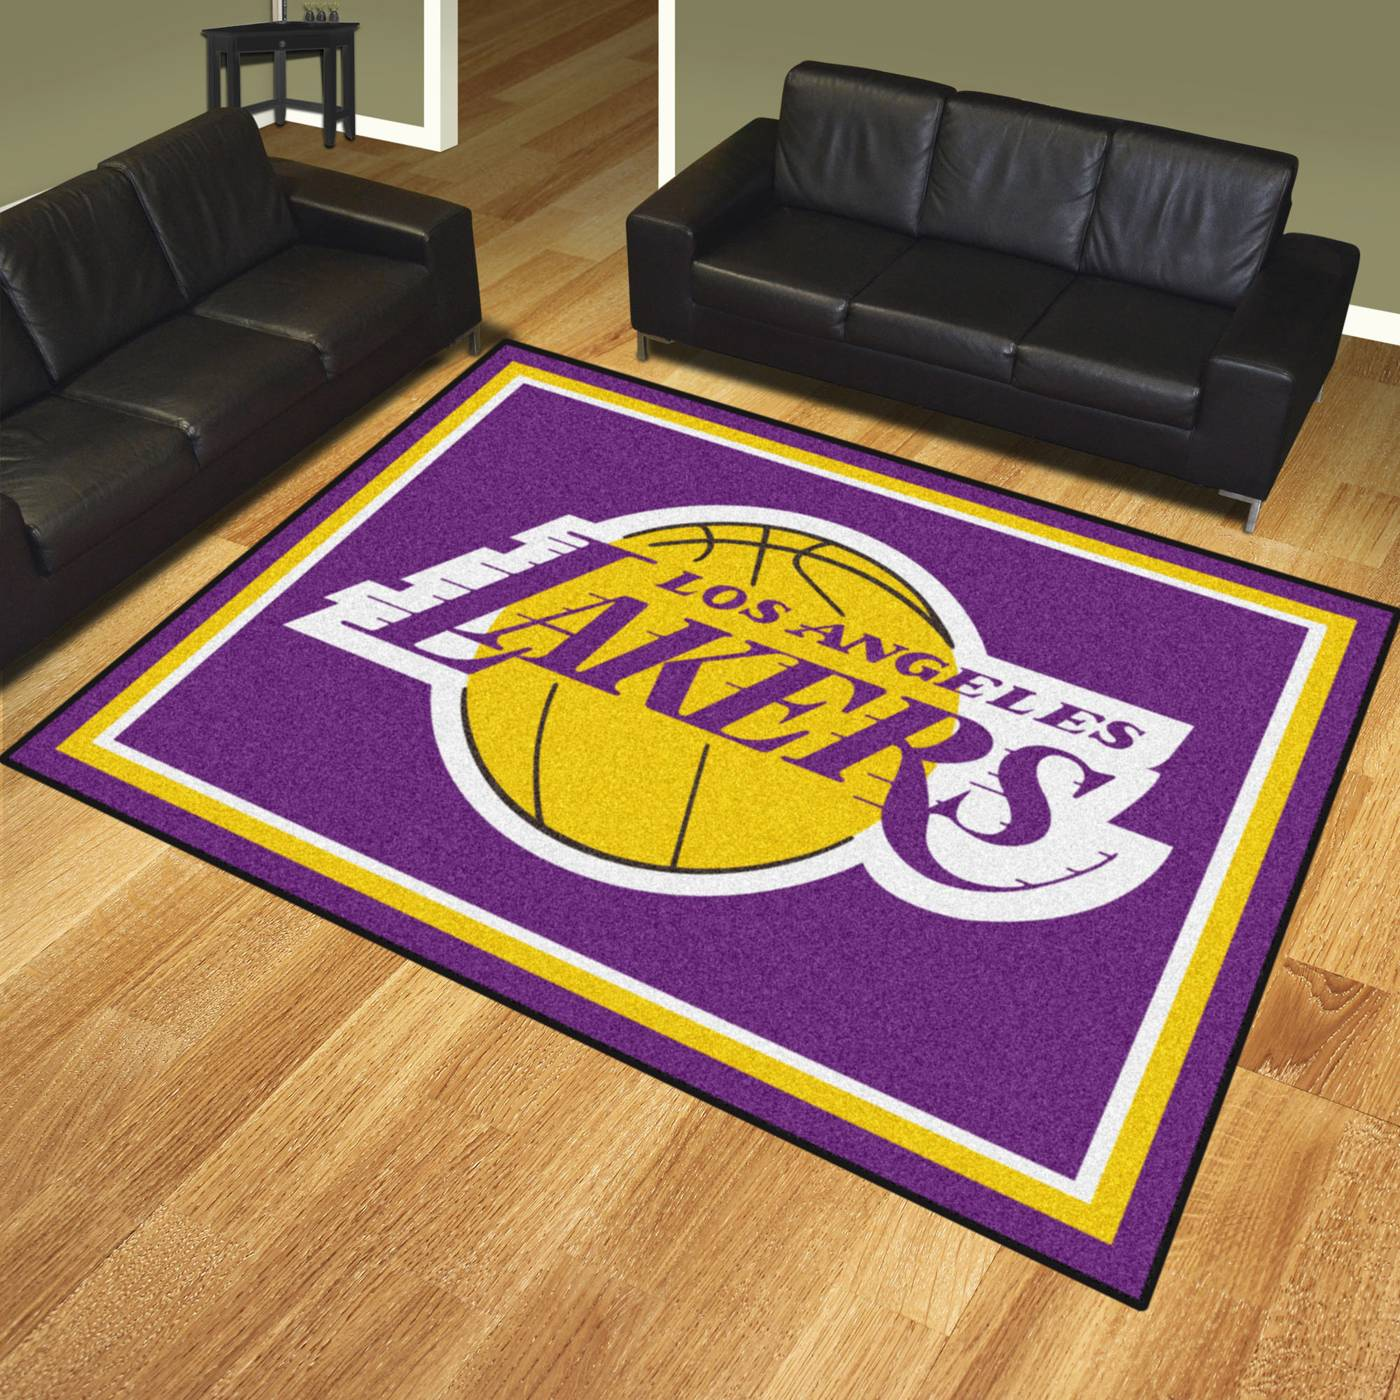 Large Basketball Area Rug: Los Angeles Lakers 8' X 10' Area Rug